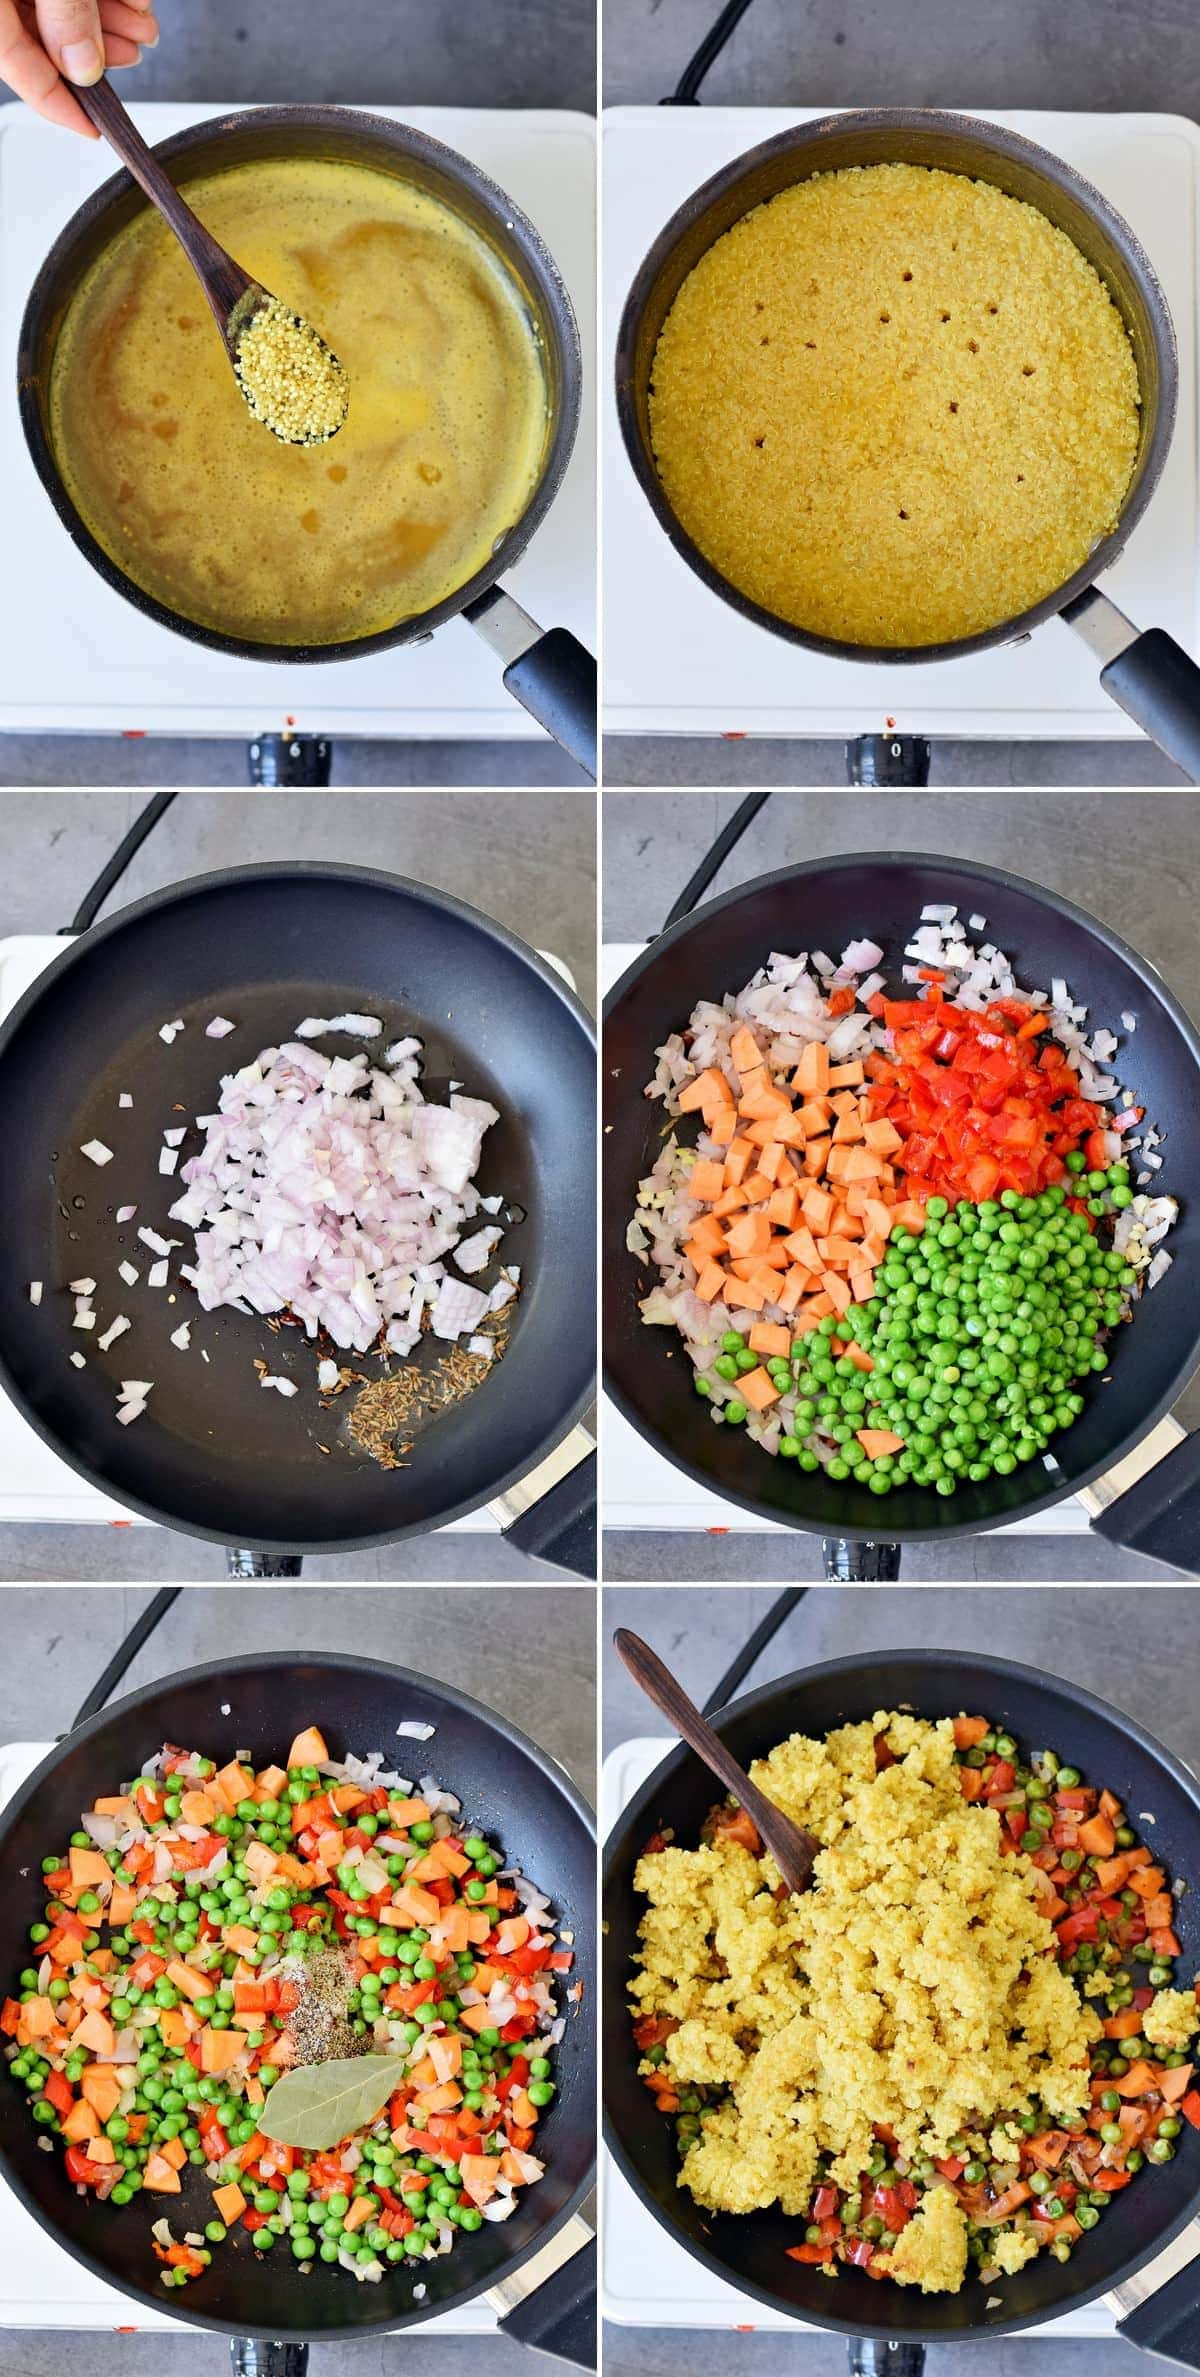 6 step-by-step photos of making quinoa pilaf with vegetables